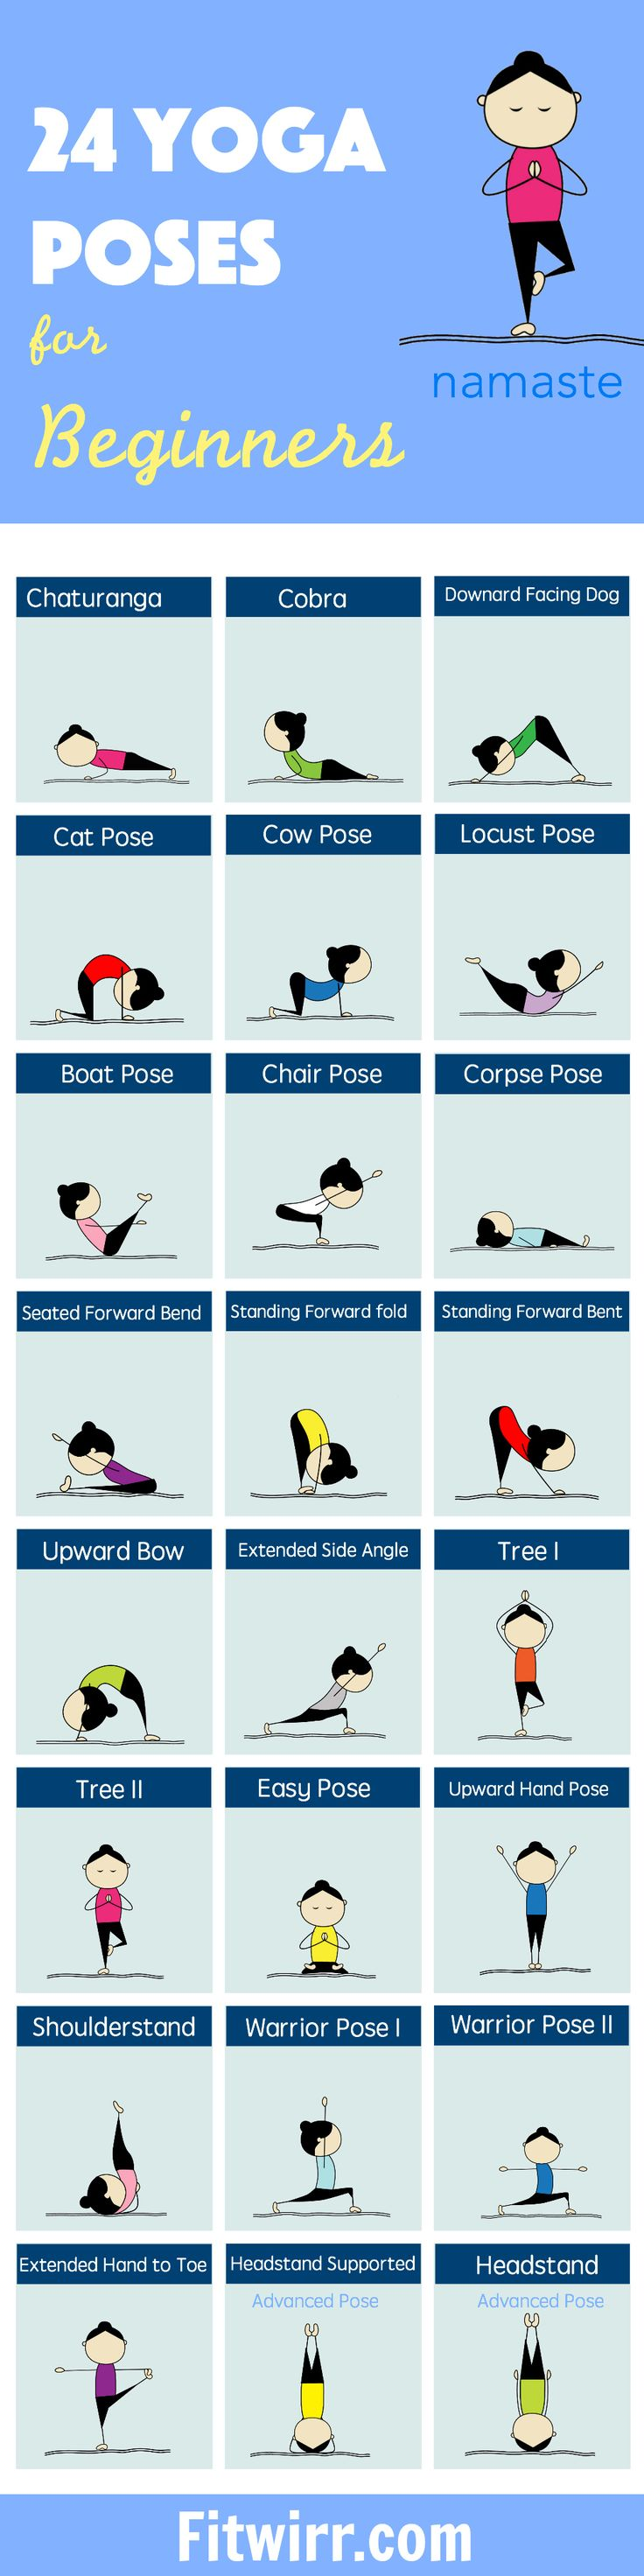 24 Yoga Poses fitness exercise yoga diy exercise healthy living home exercise yoga poses